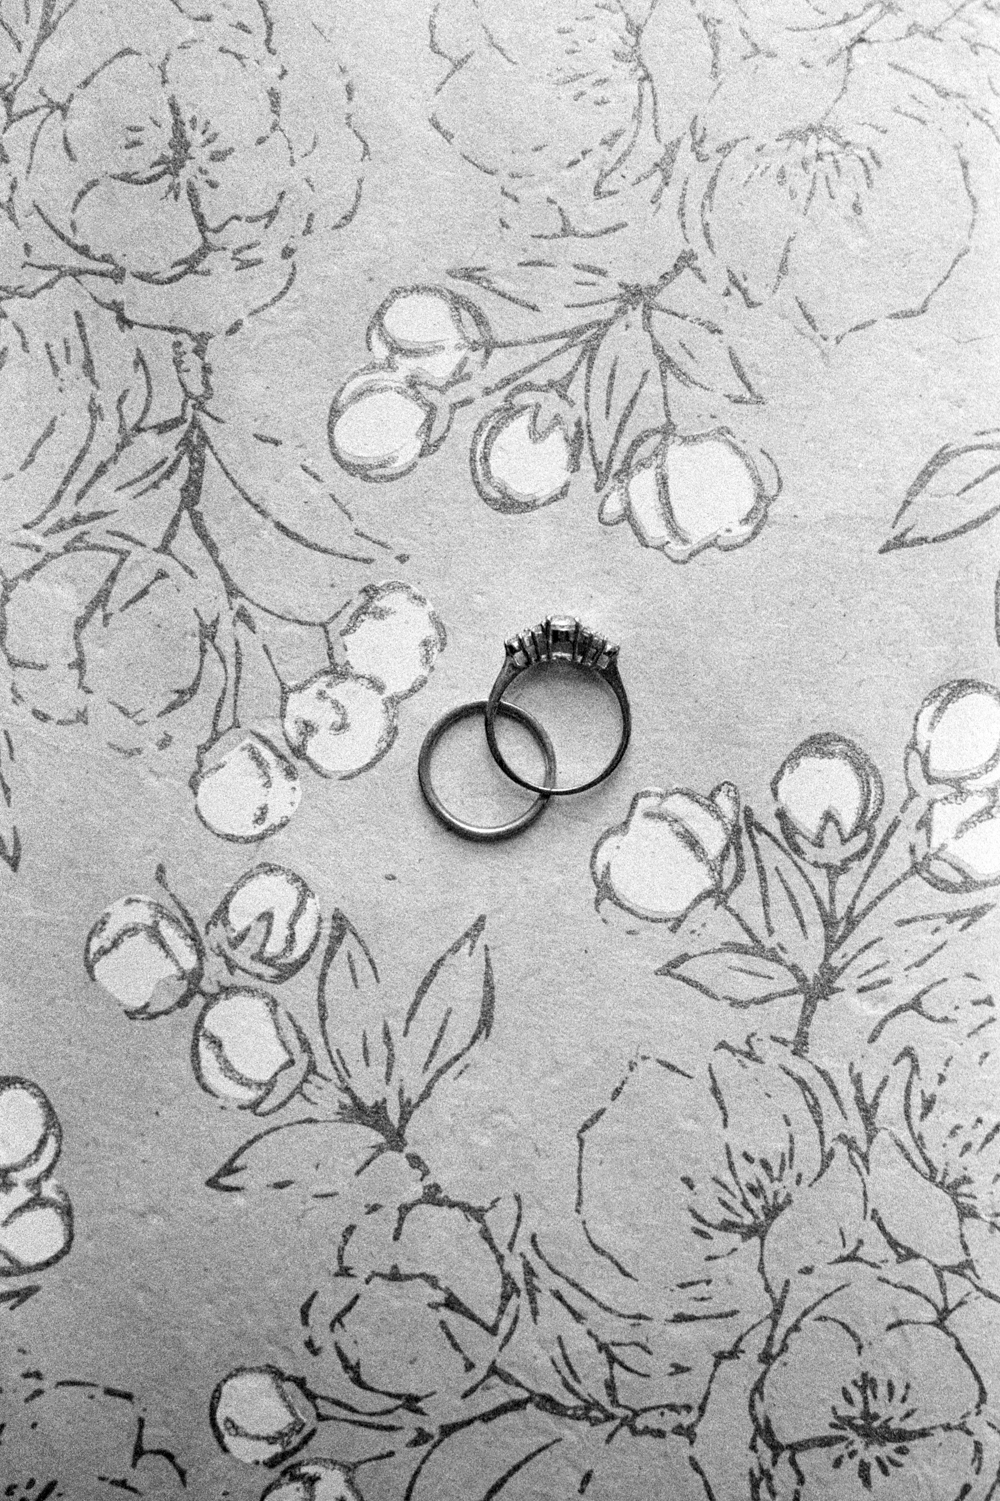 wedding-details-rings-bands-christine-gosch-film-photographer-black-and-white-houston-texas-wedding-venue-35mm-photography-fine-art-8.jpg